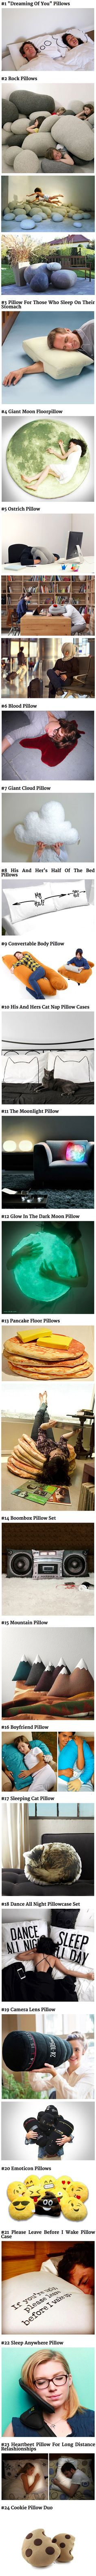 Here are some cool, funny and creative pillow designs that think outside the box. I want number 23, that would be just sooooo cool!!!!